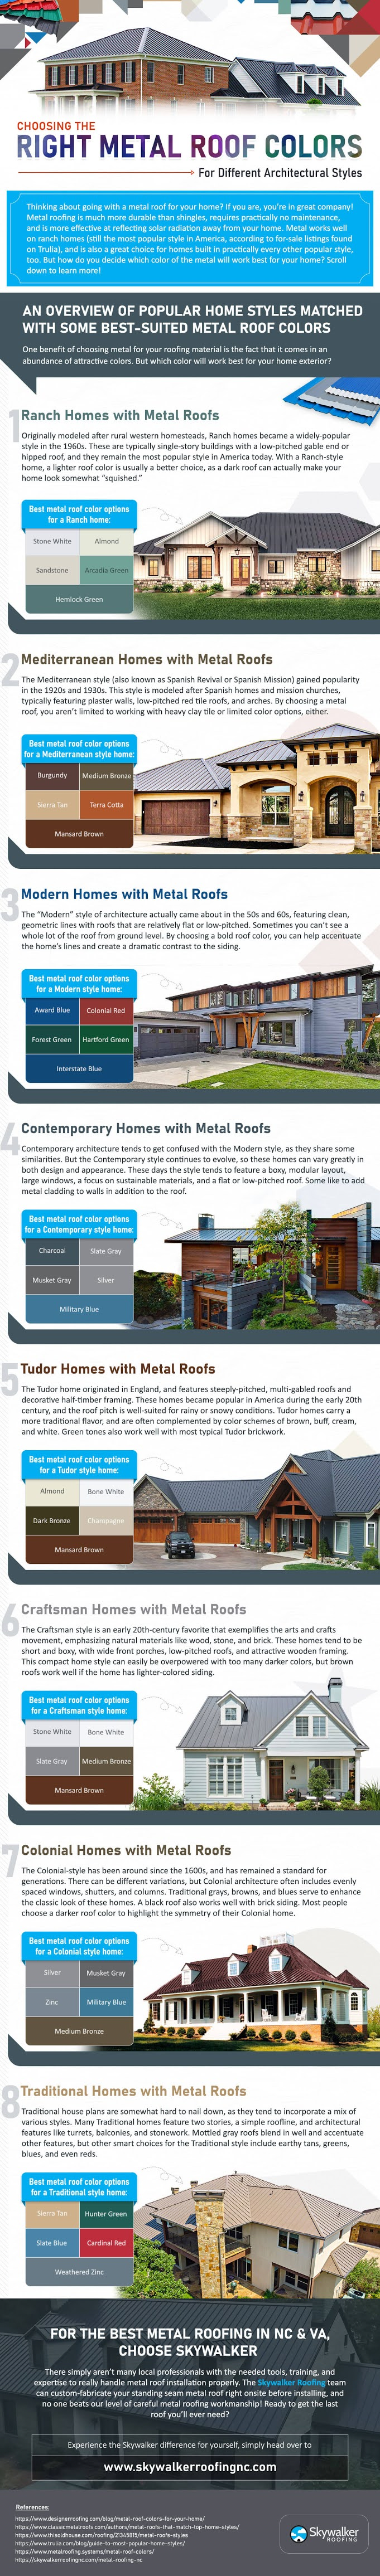 Choosing the Right Metal Roof Colors for Different Architectural Styles #infographic #Home & Garden #Architectural Styles #Metal Roof Colors